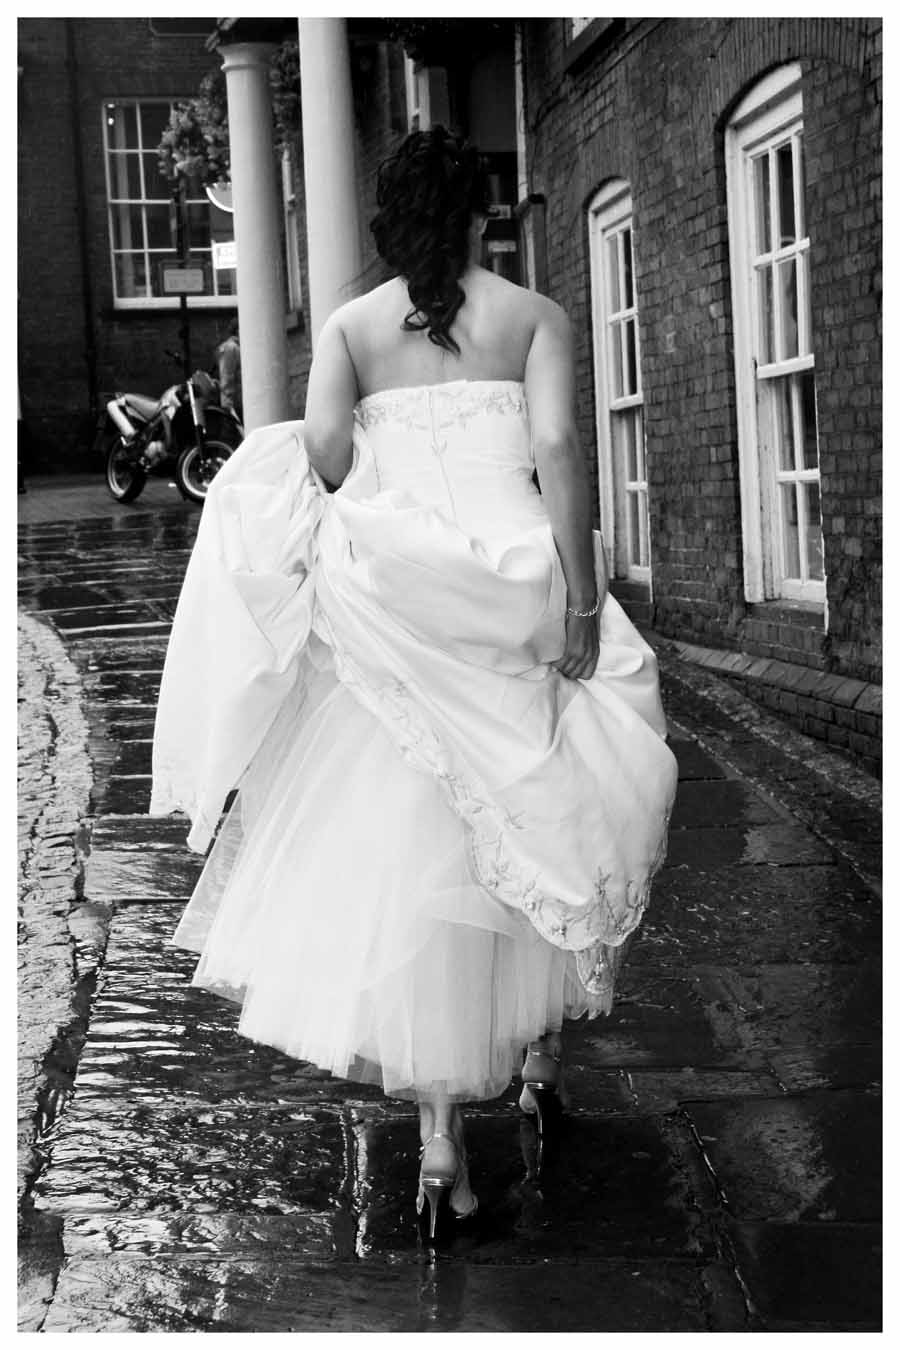 BRIDE Photos by Simeon Thaw copyright 2014 (79).jpg